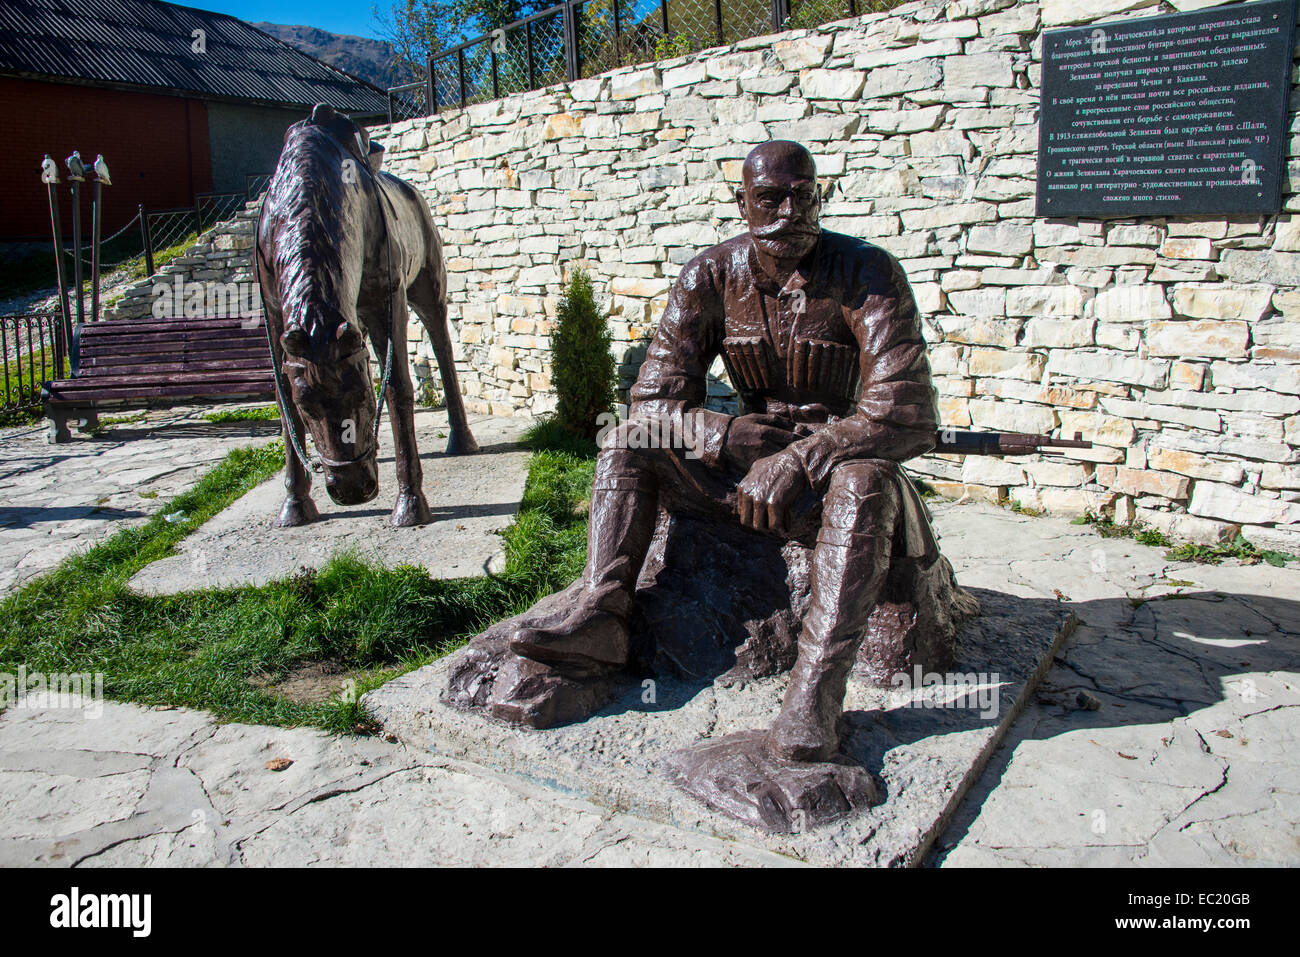 Monument for the Chechen warrior Zelimxan, Chechnya, Caucasus, Russia - Stock Image